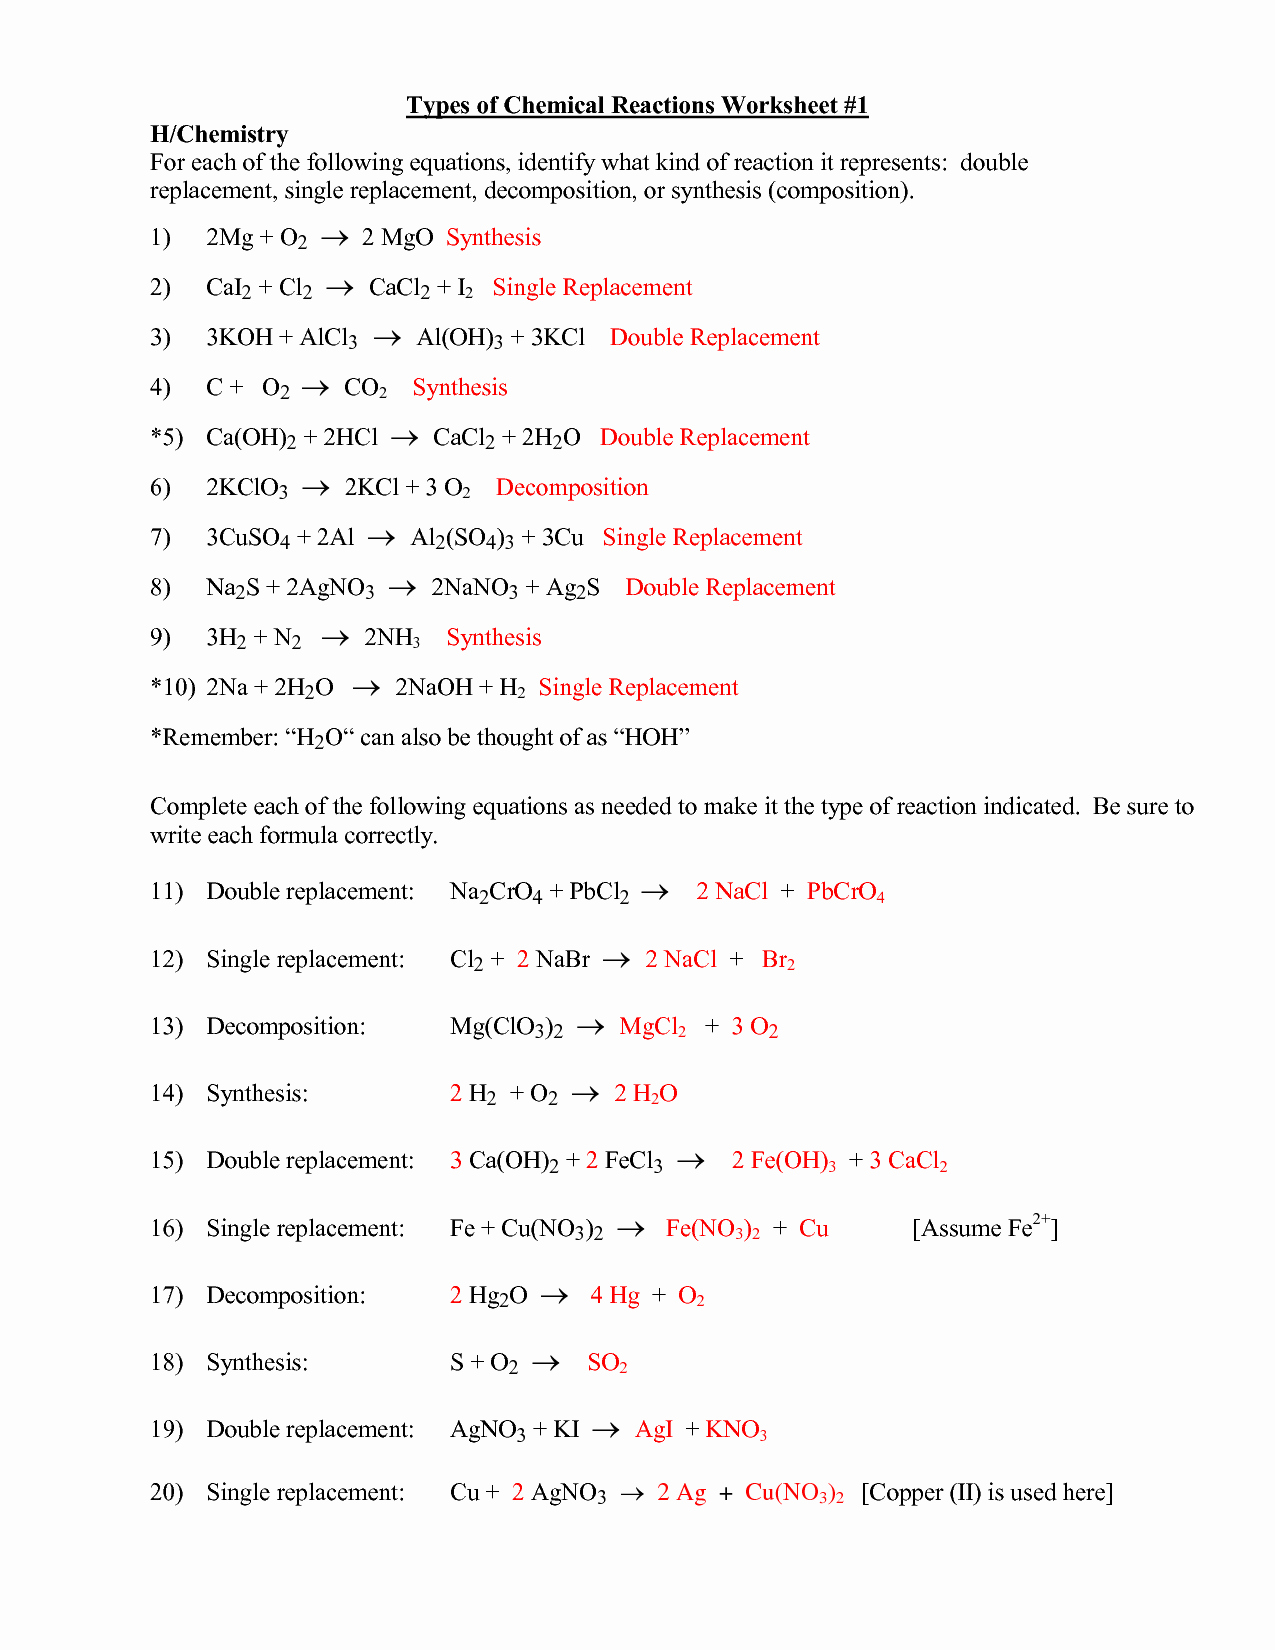 Types Of Chemical Reactions Worksheet Inspirational 16 Best Of Types Chemical Reactions Worksheets